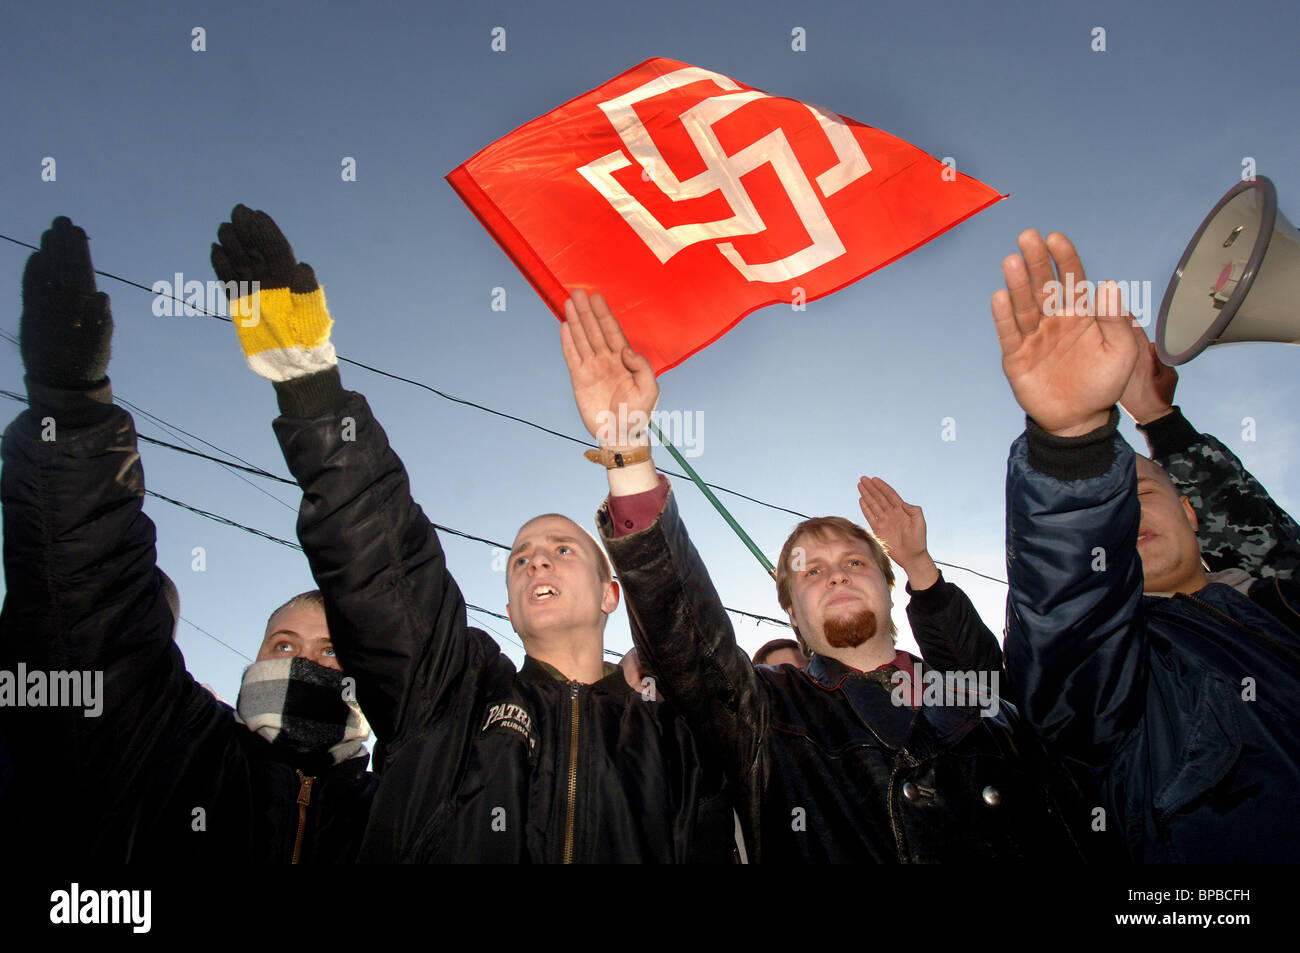 Members of radical nationalist organisations stage protest action in Moscow - Stock Image